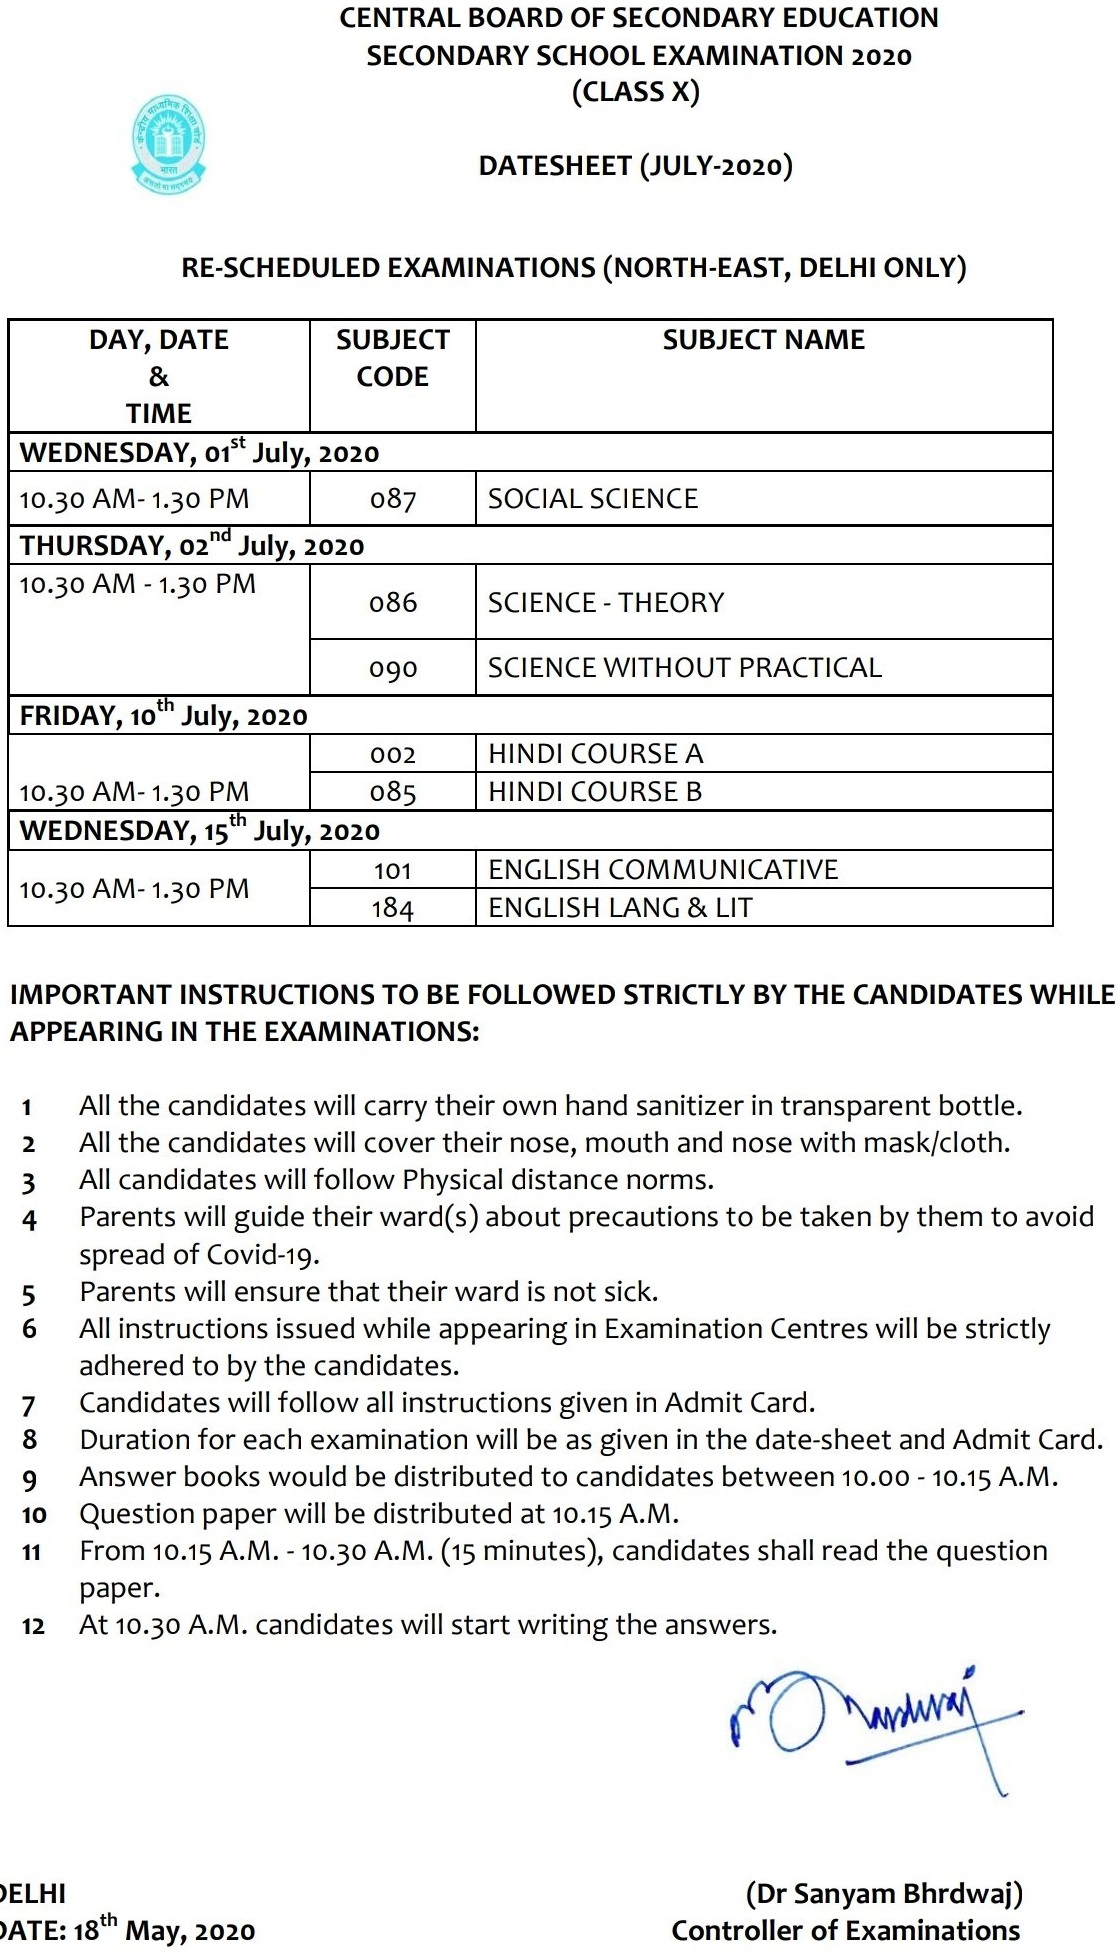 CBSE class 10th Date sheet 2020 for remaining exams